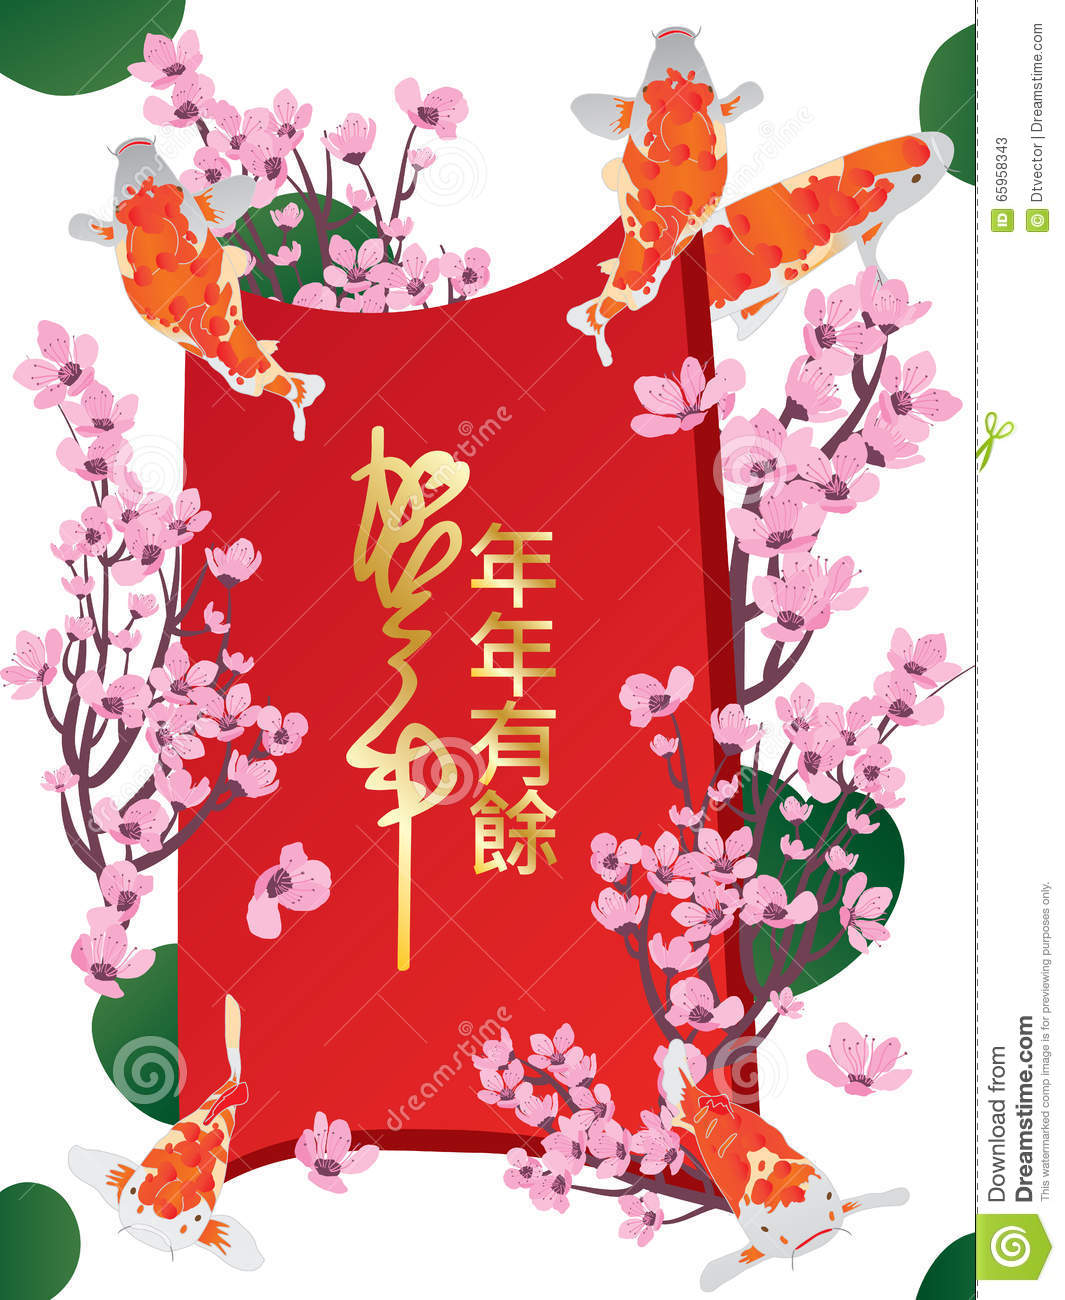 Koi open vertical banner stock vector. Illustration of flight - 65958343